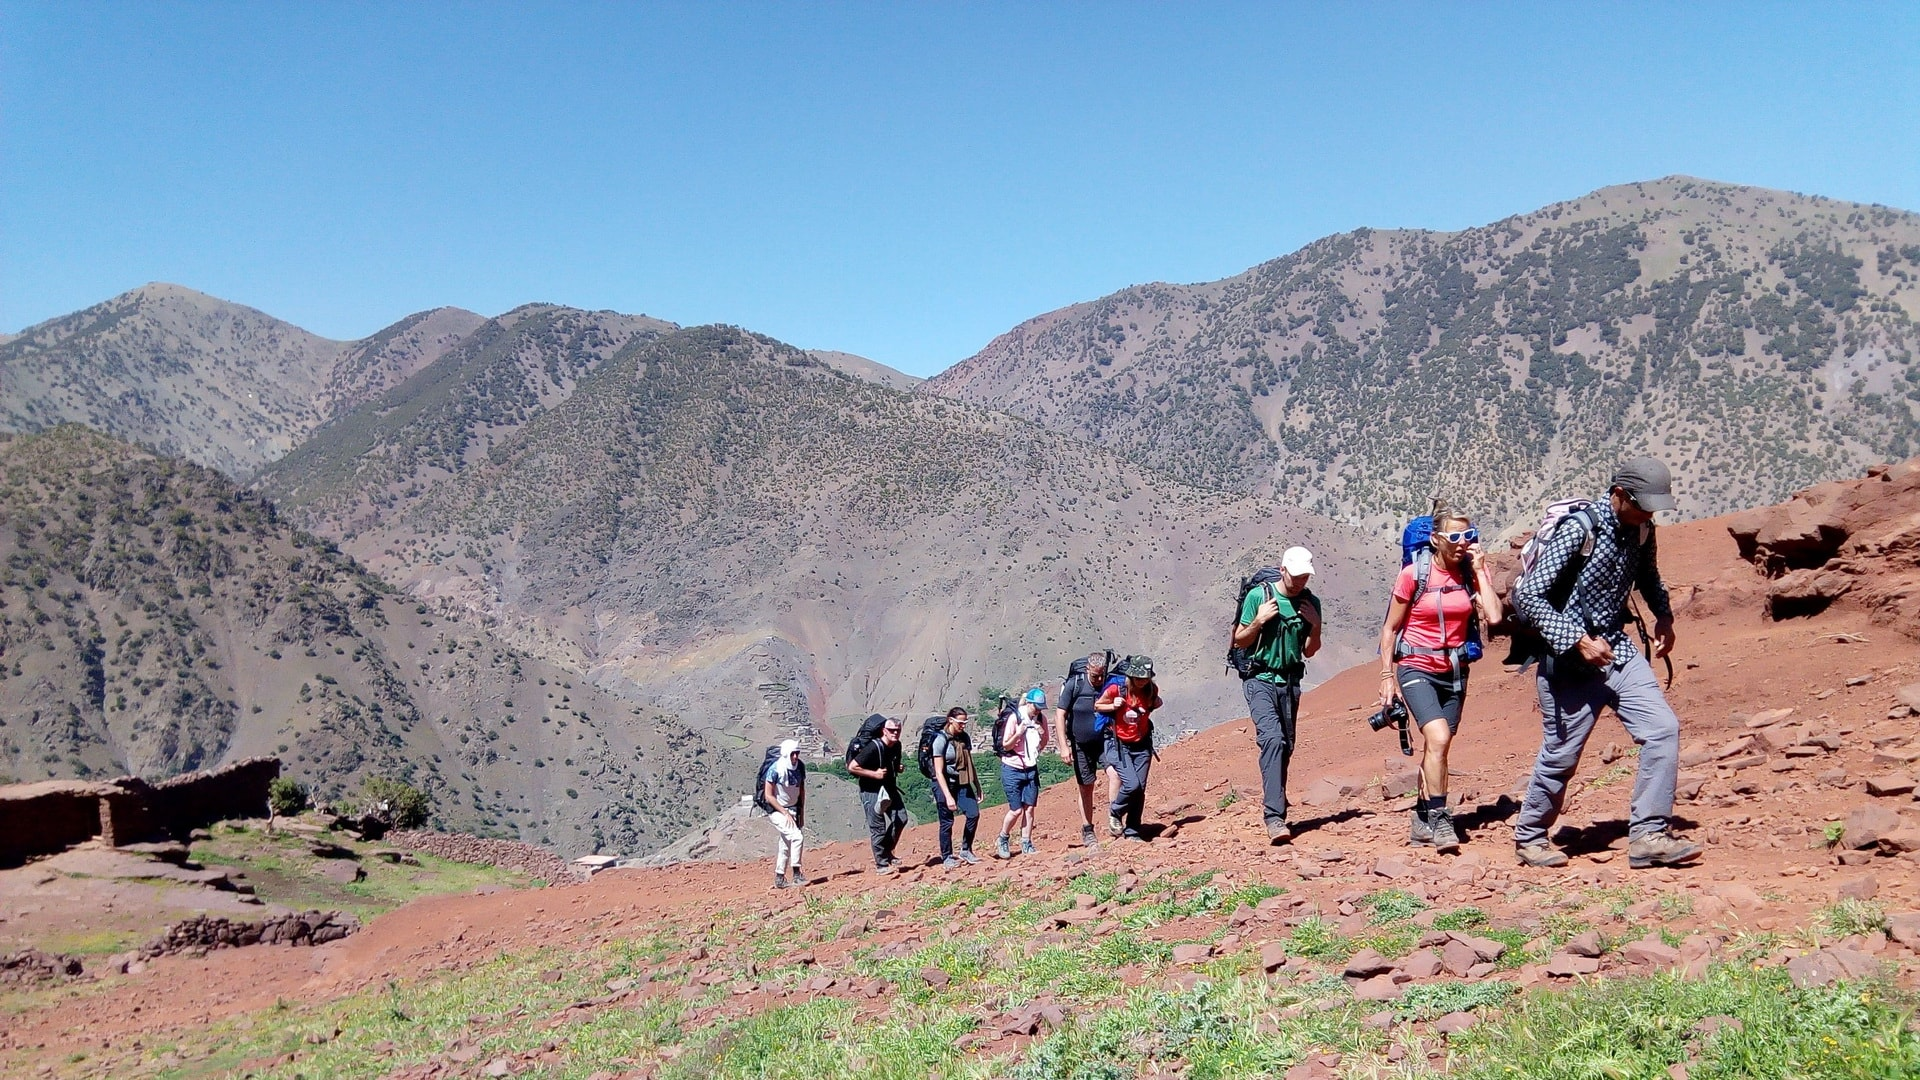 Pathfinders treks - full day trekking in atlas mountains from marrakech